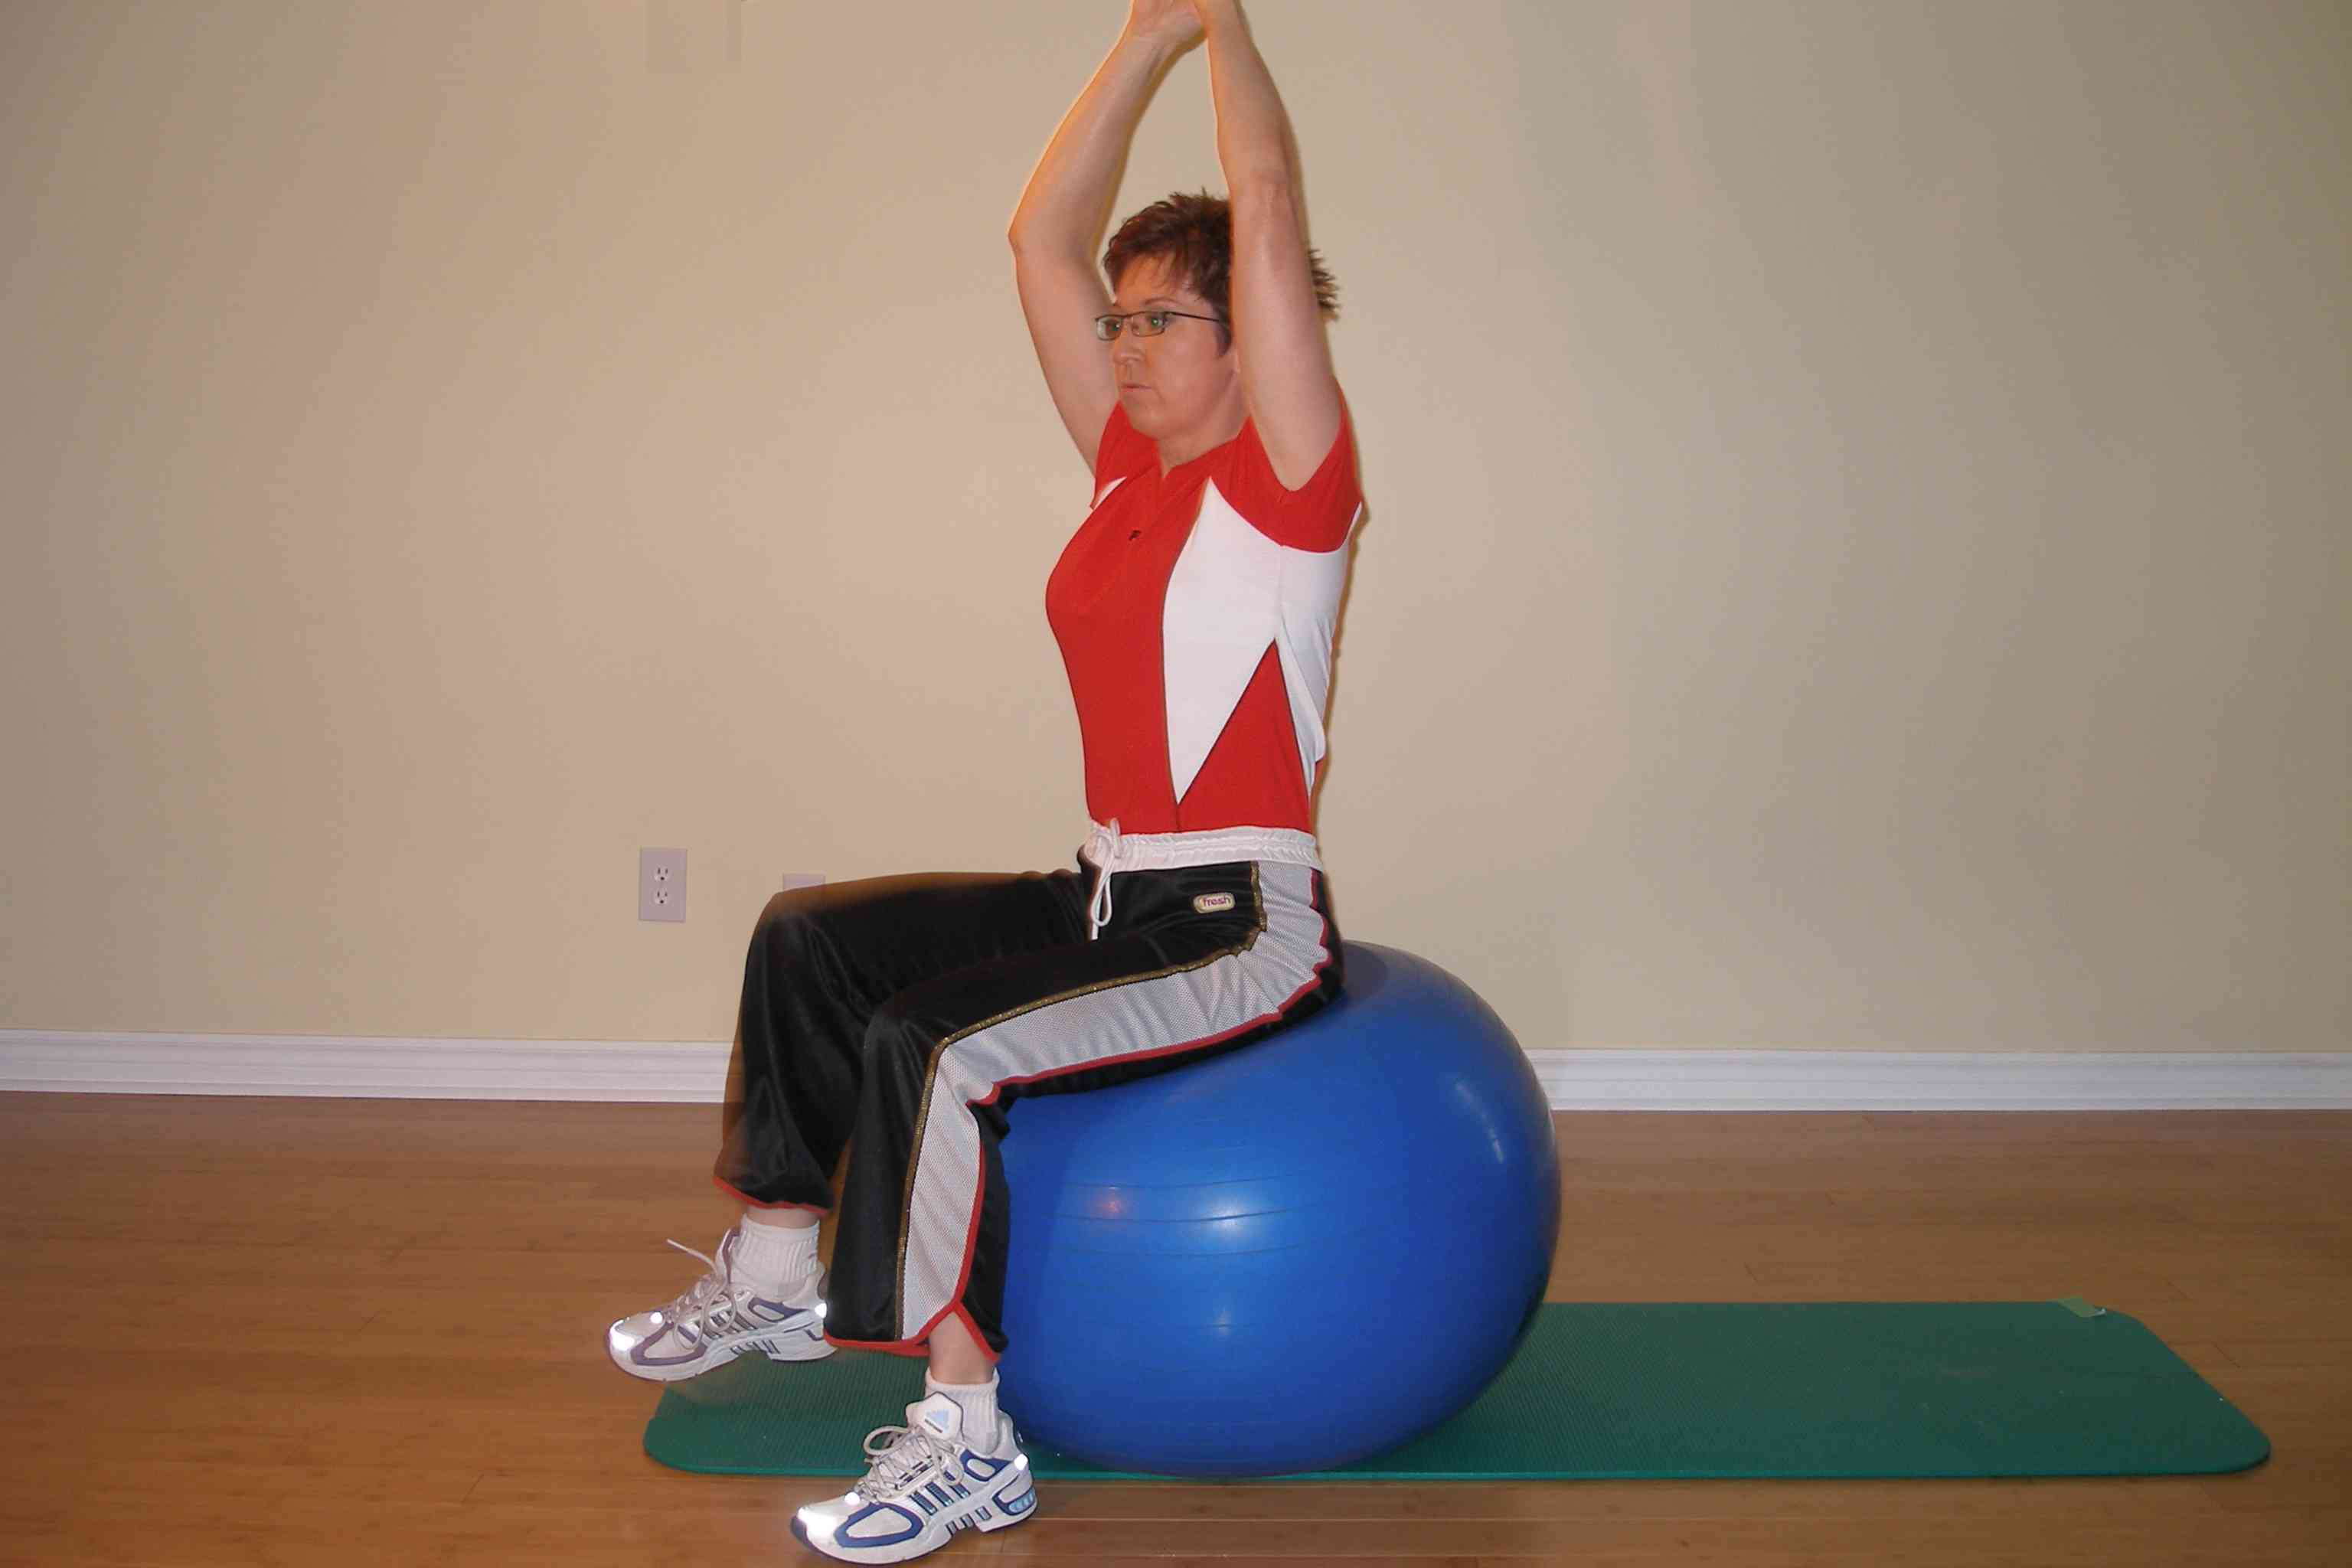 single leg raise on the exercise ball with arms up start